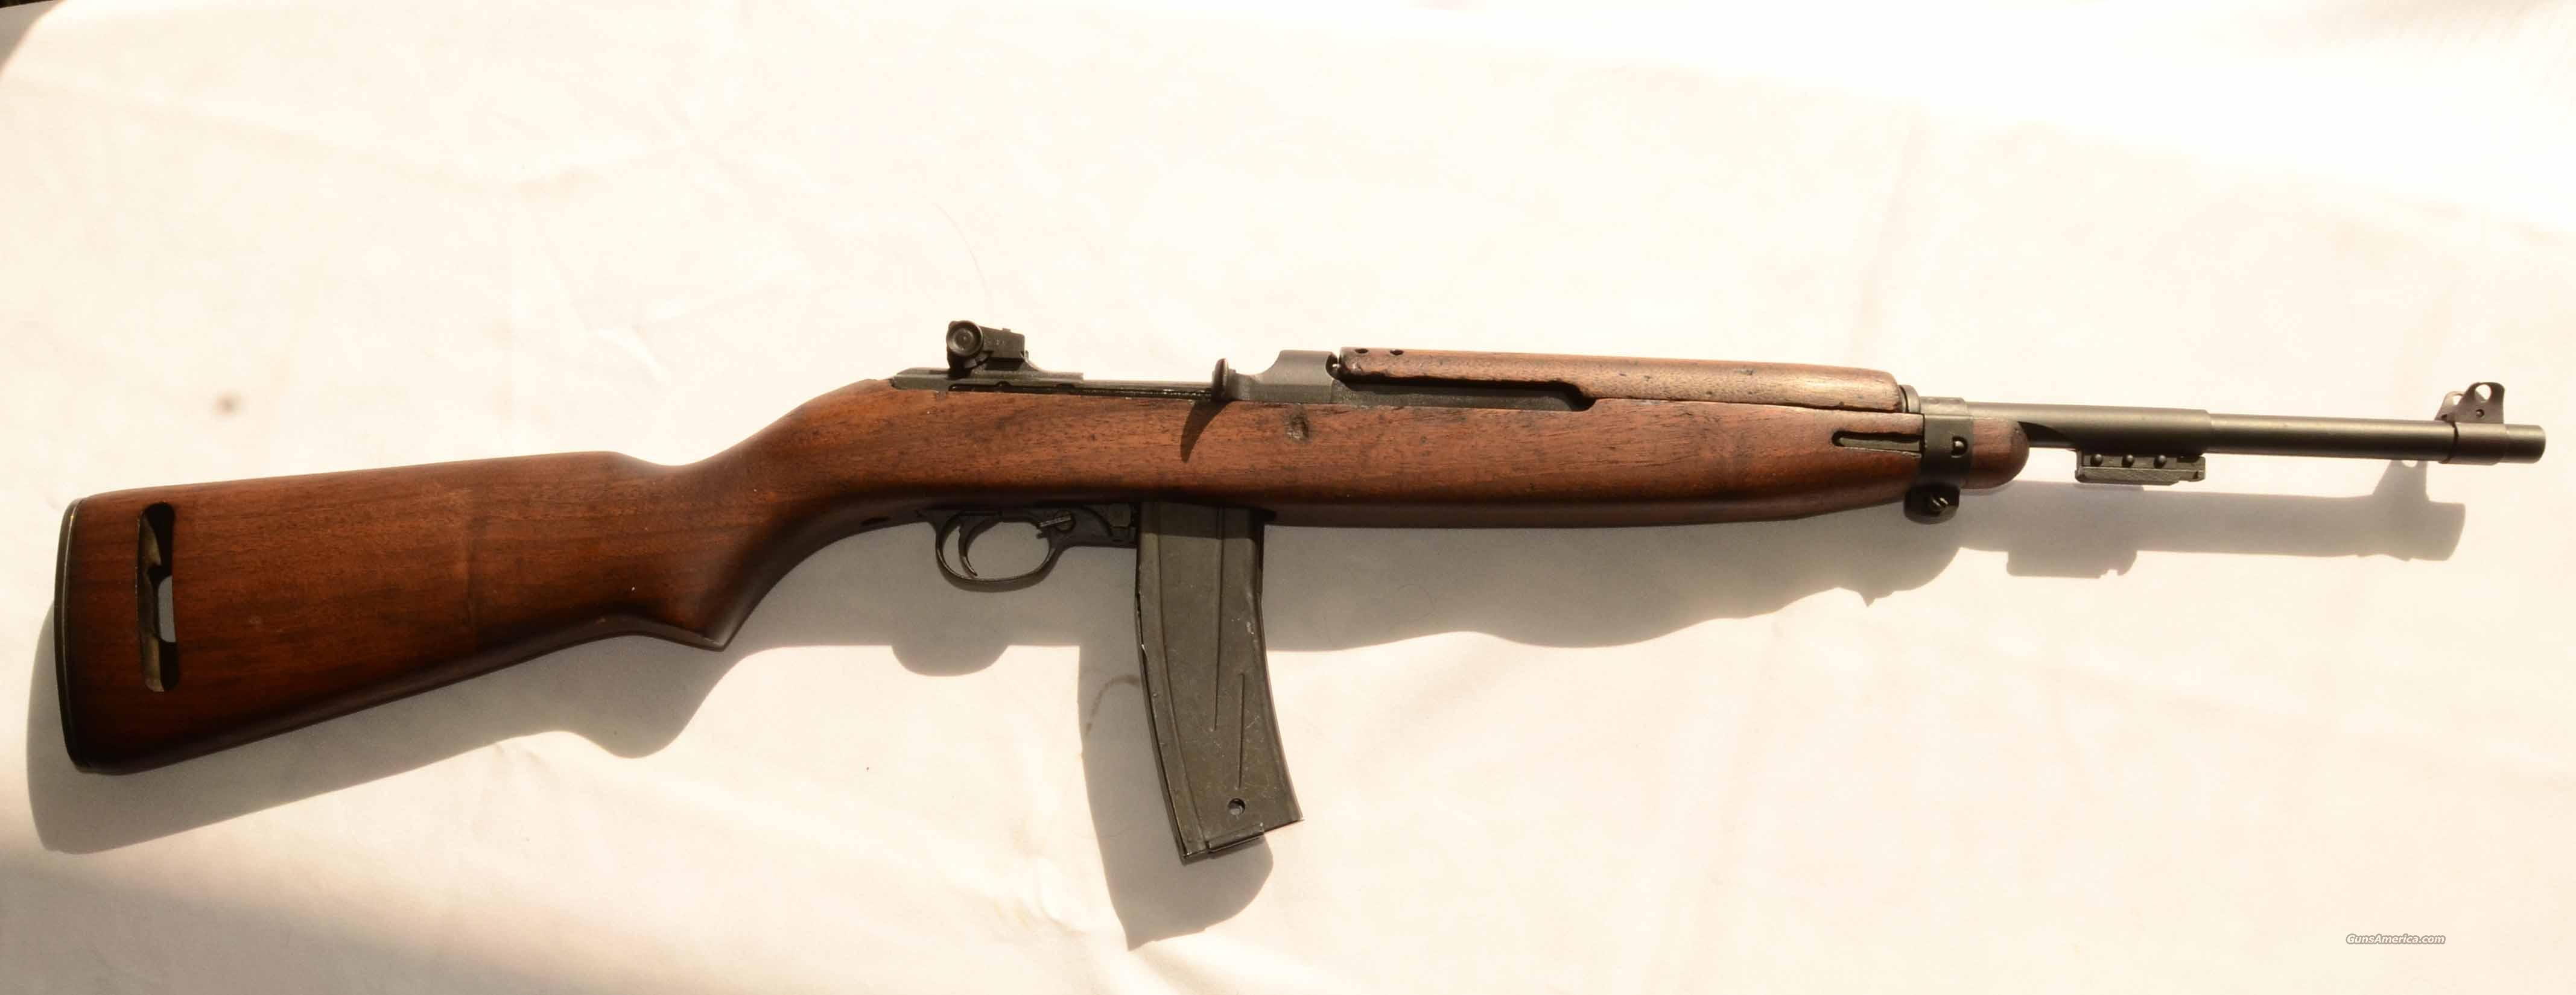 M2 CARBINE, WWII VINTAGE, UNFIRED, FULL-AUTO